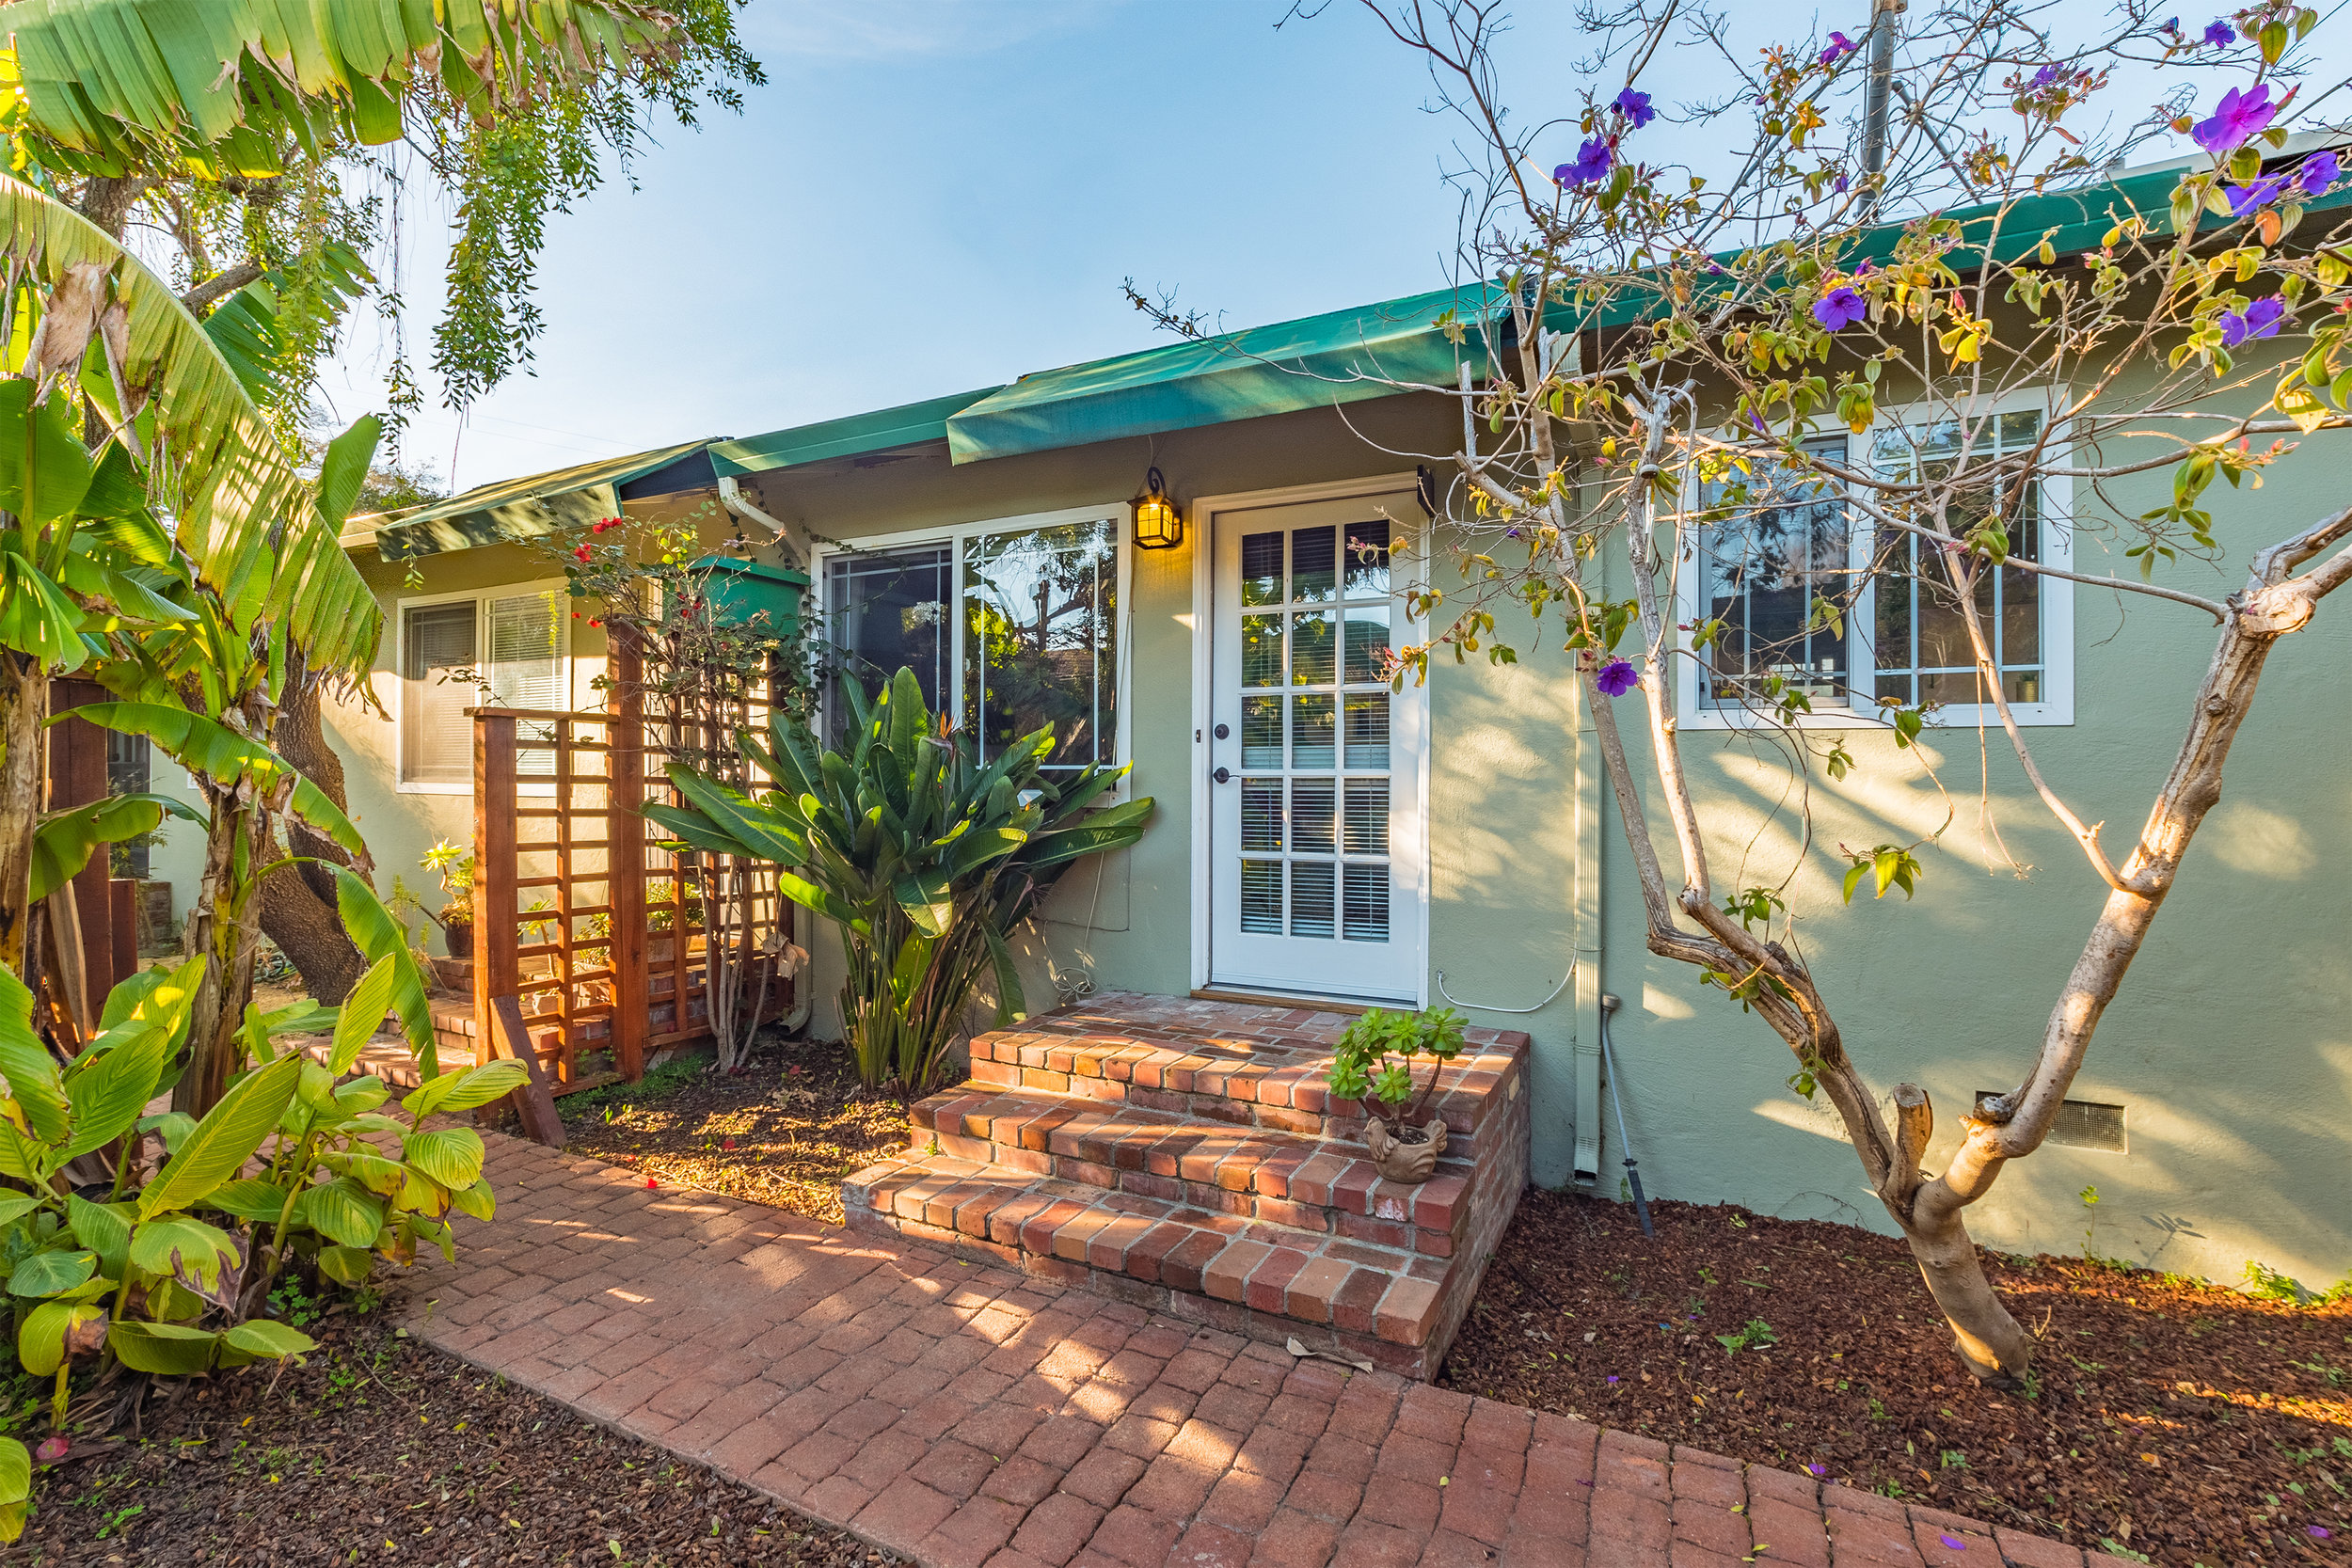 Duplex for Sale in Capitola.jpg